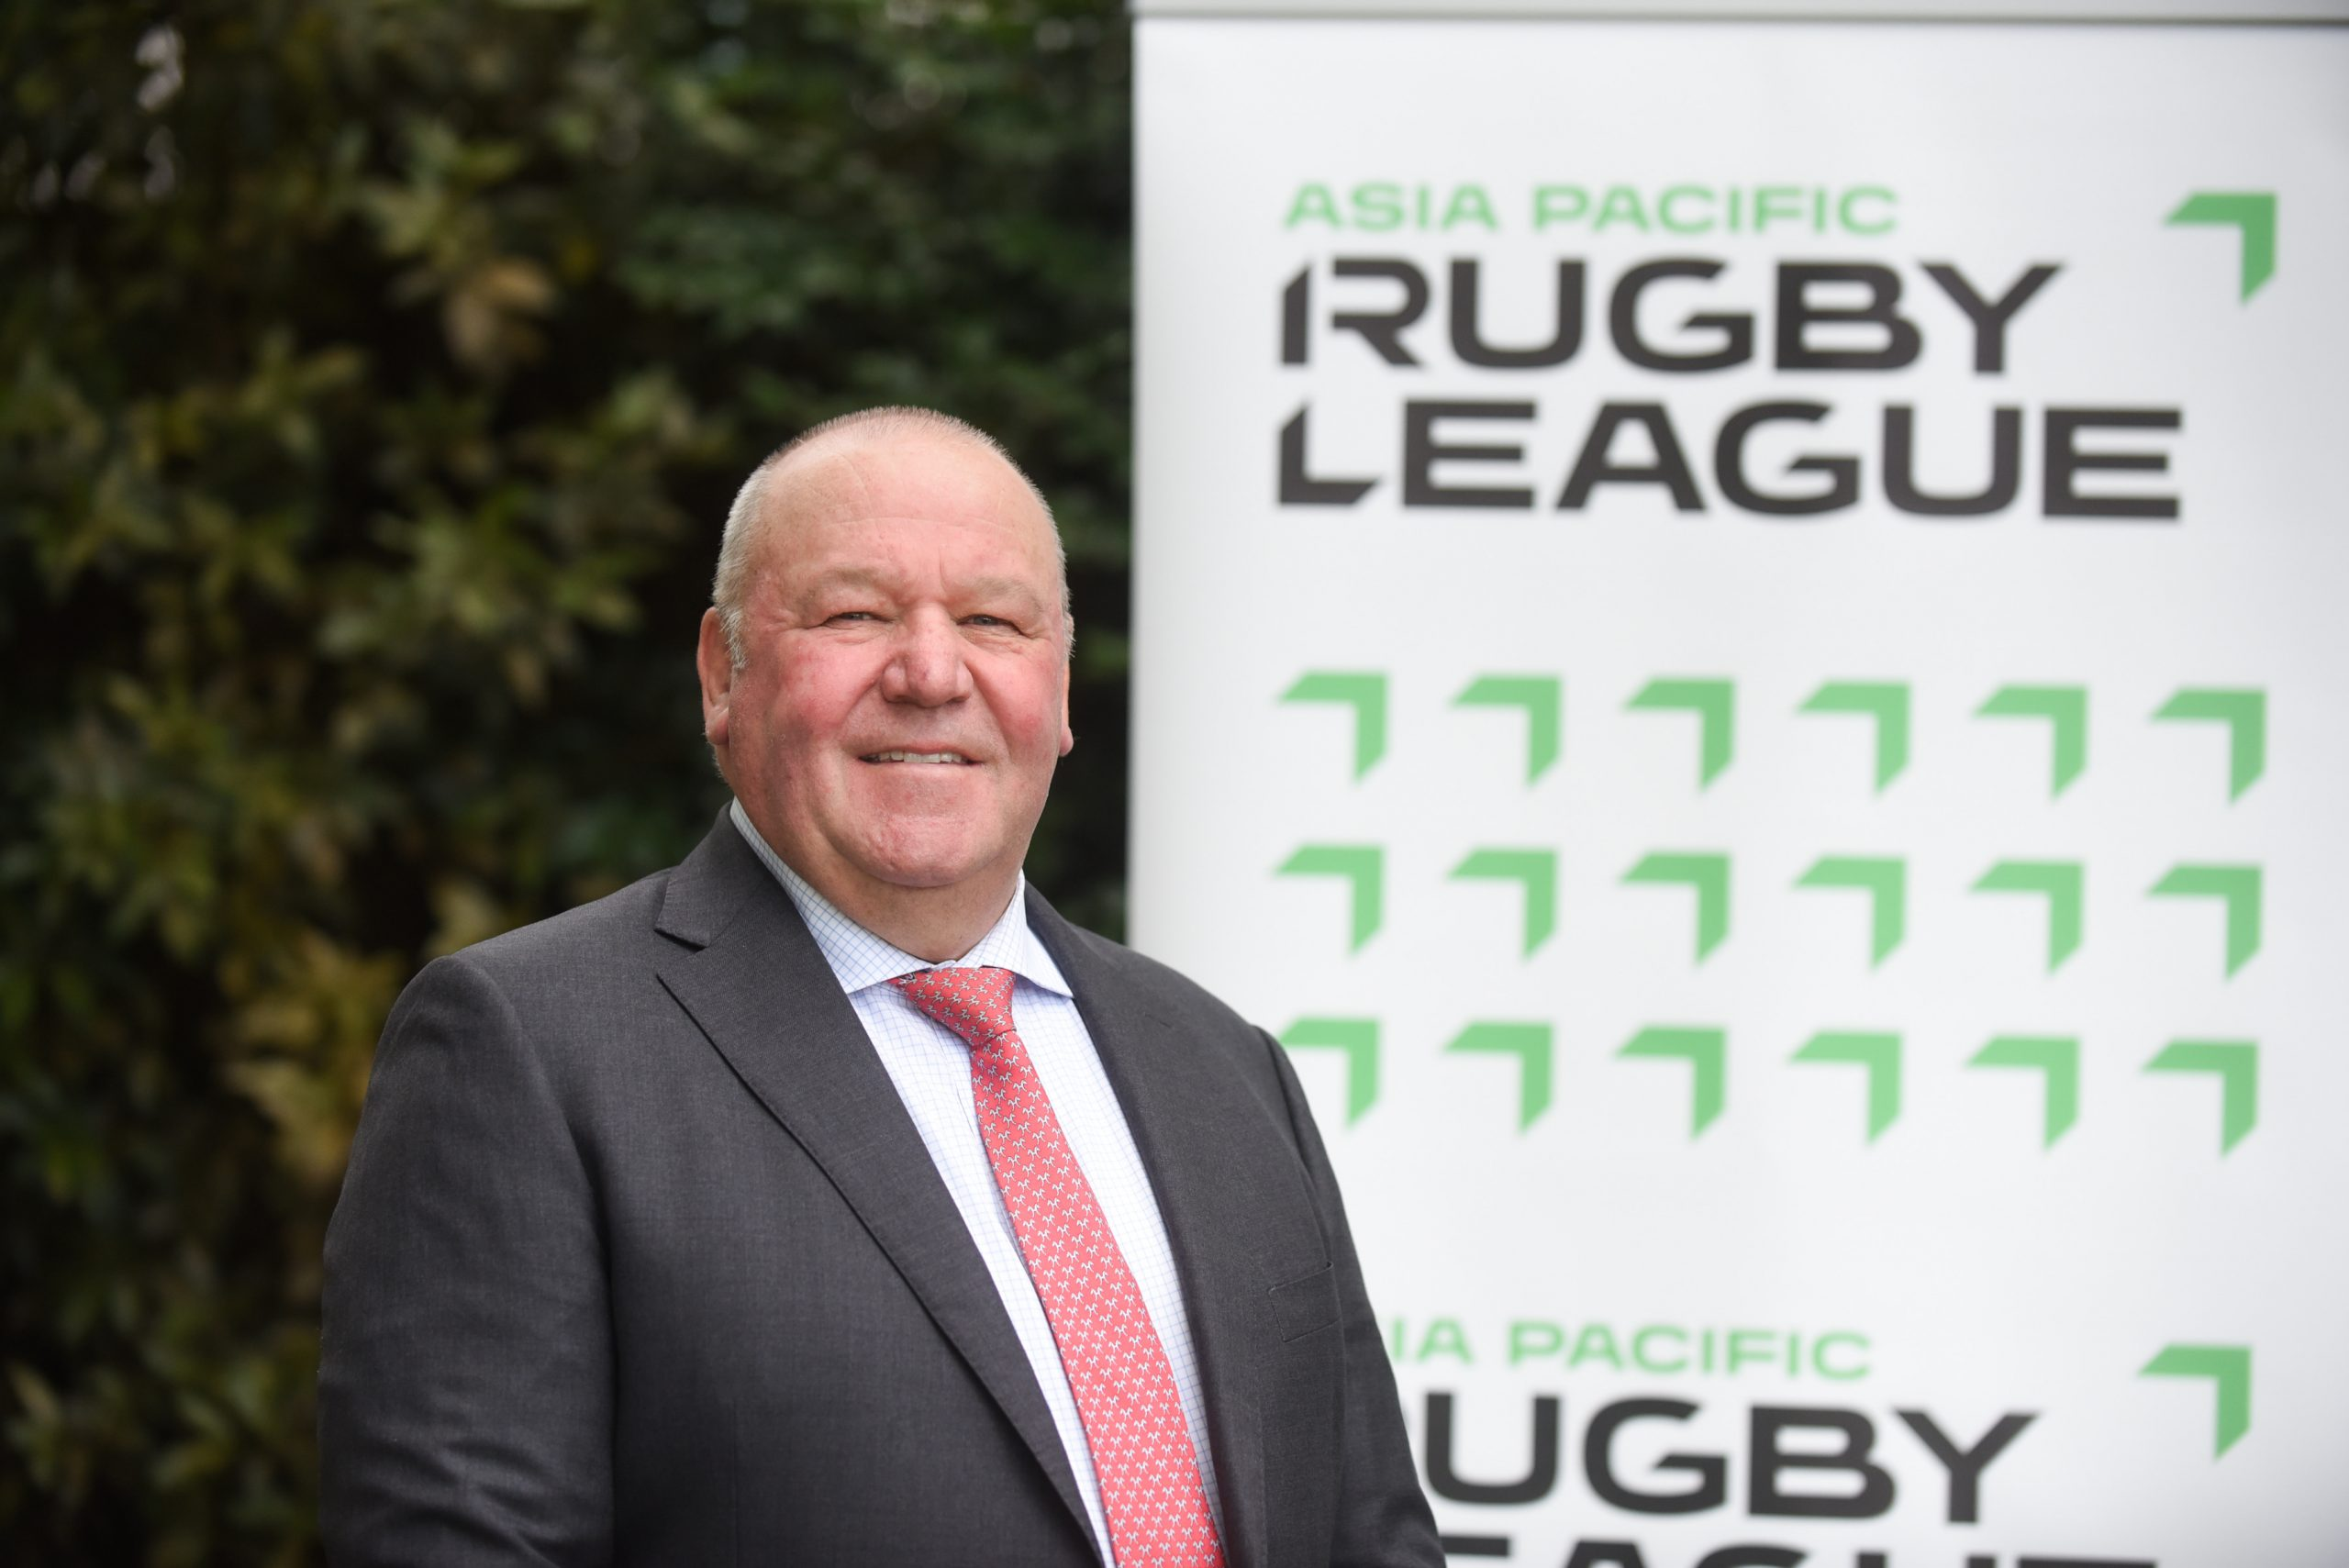 New appointment strengthens Asia Pacific Rugby League